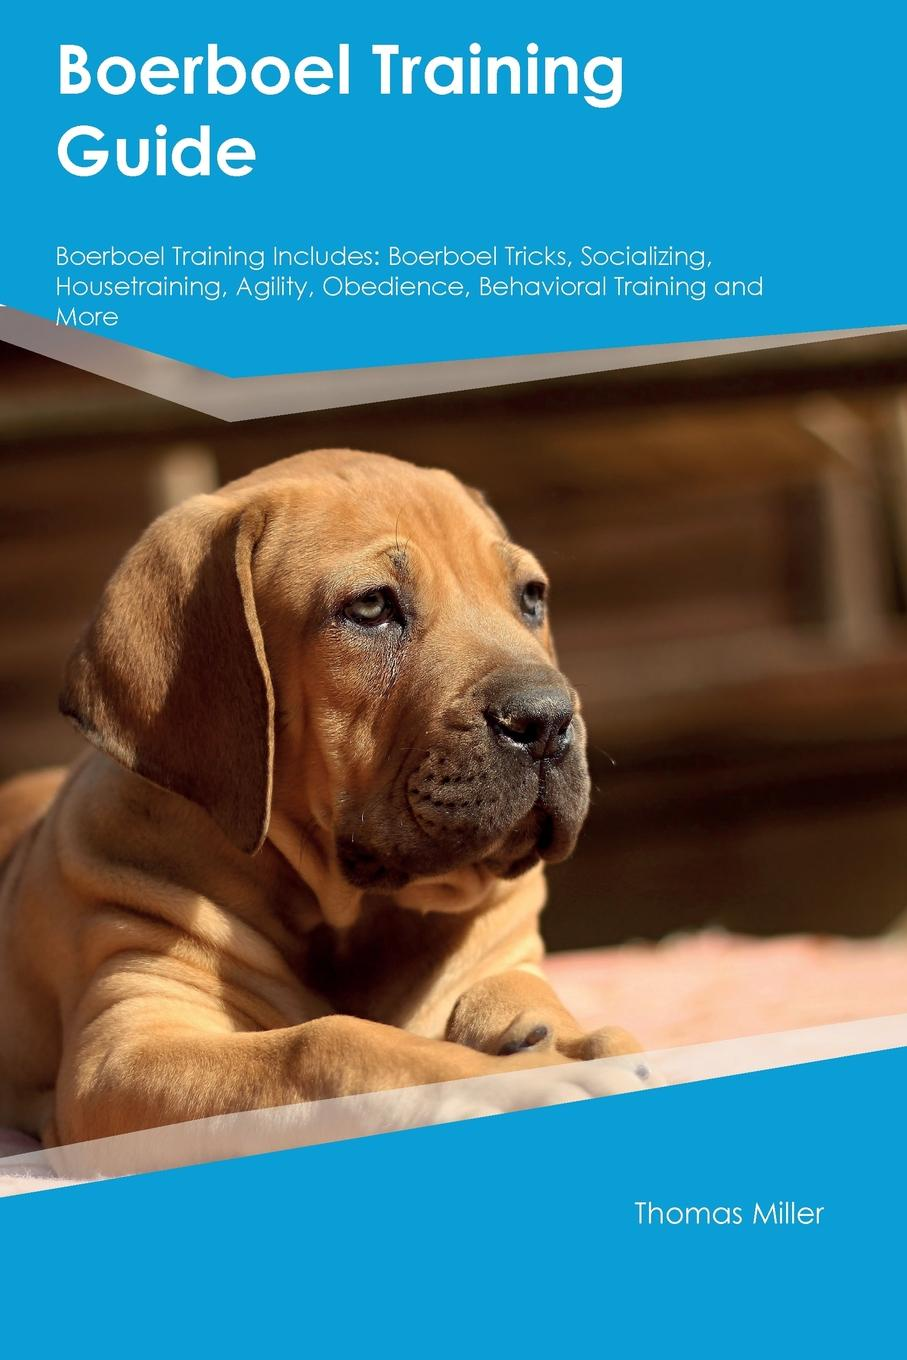 Фото - Adam Arnold Boerboel Training Guide Boerboel Training Includes. Boerboel Tricks, Socializing, Housetraining, Agility, Obedience, Behavioral Training and More harry holstone boerboel the boerboel dog owner s manual boerboel dog care personality grooming health costs and feeding all included